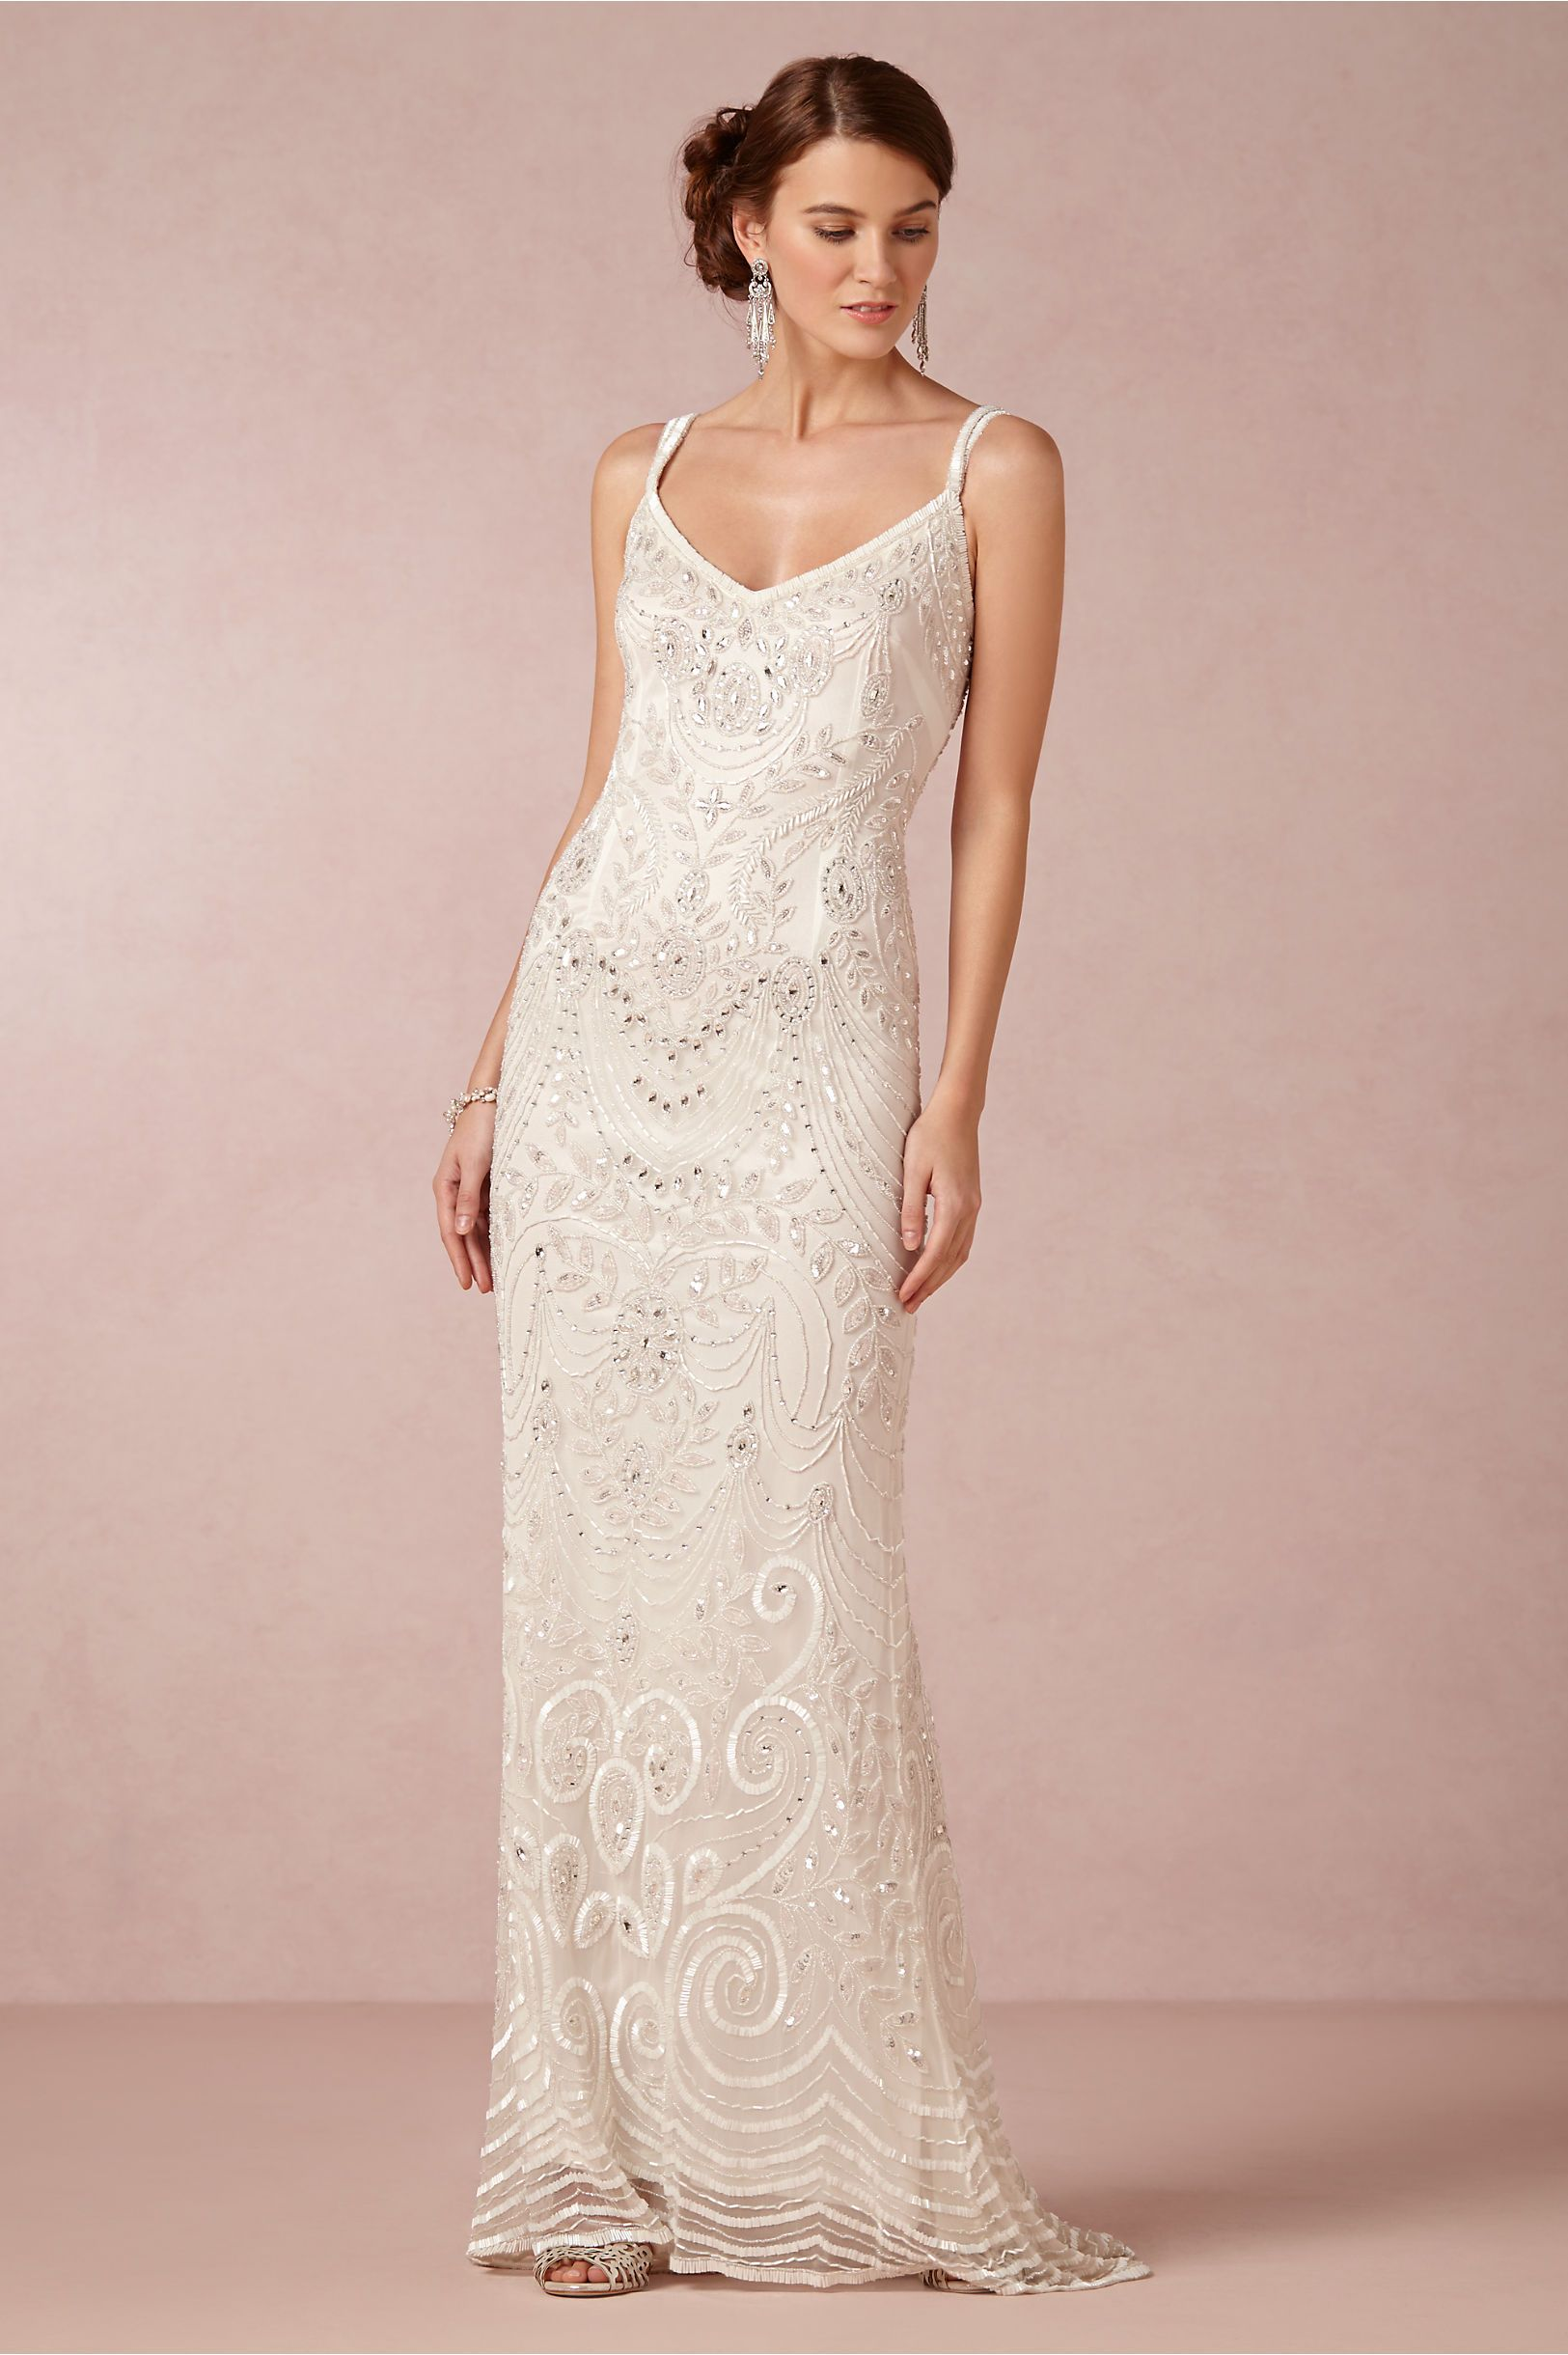 Elsa Gown by Theia Bridal for BHLDN | Weddings | Pinterest ...